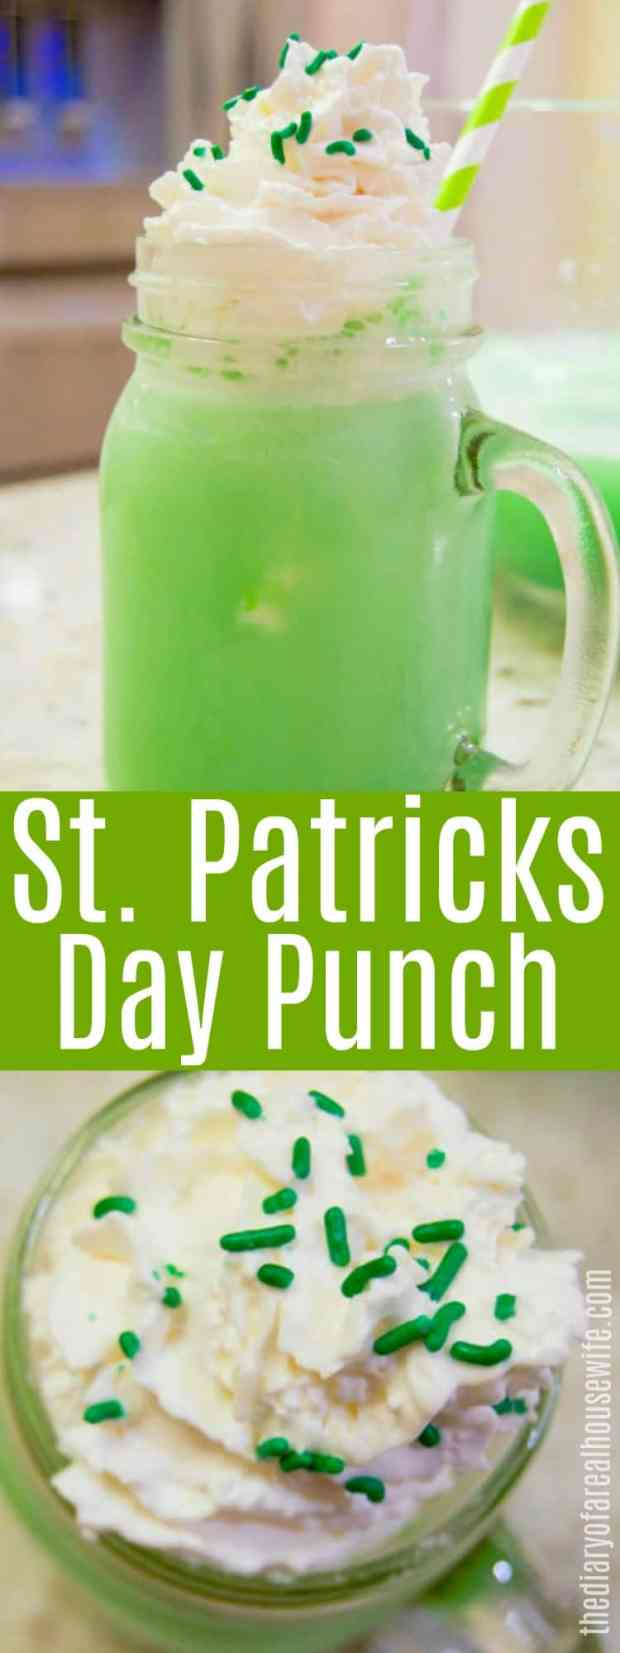 St.-Patricks-Day-Punch.jpg